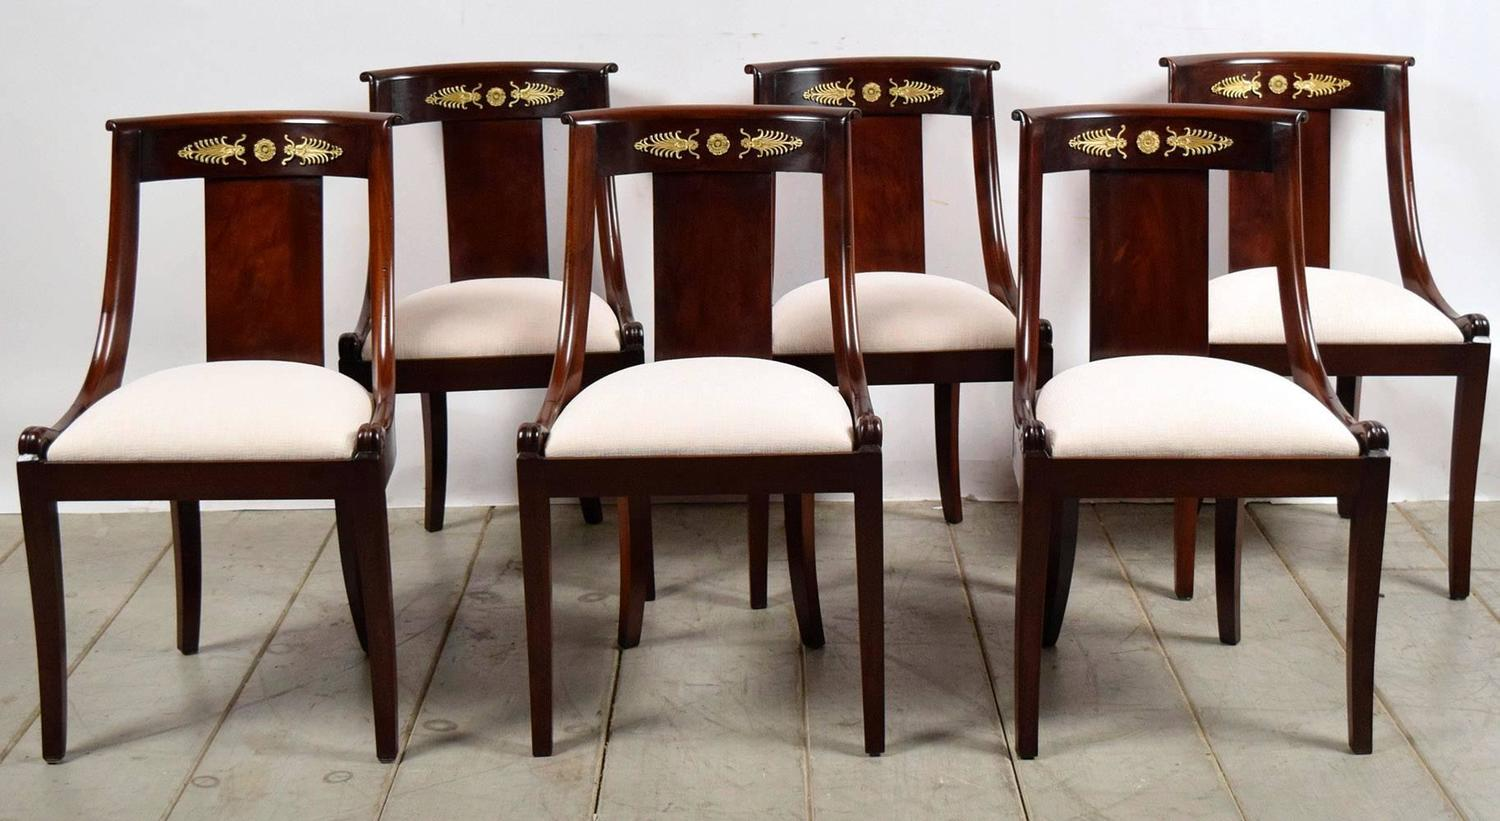 Set of 12 French Antique Empire Dining Chairs at 1stdibs : C50434z from www.1stdibs.com size 1500 x 821 jpeg 127kB